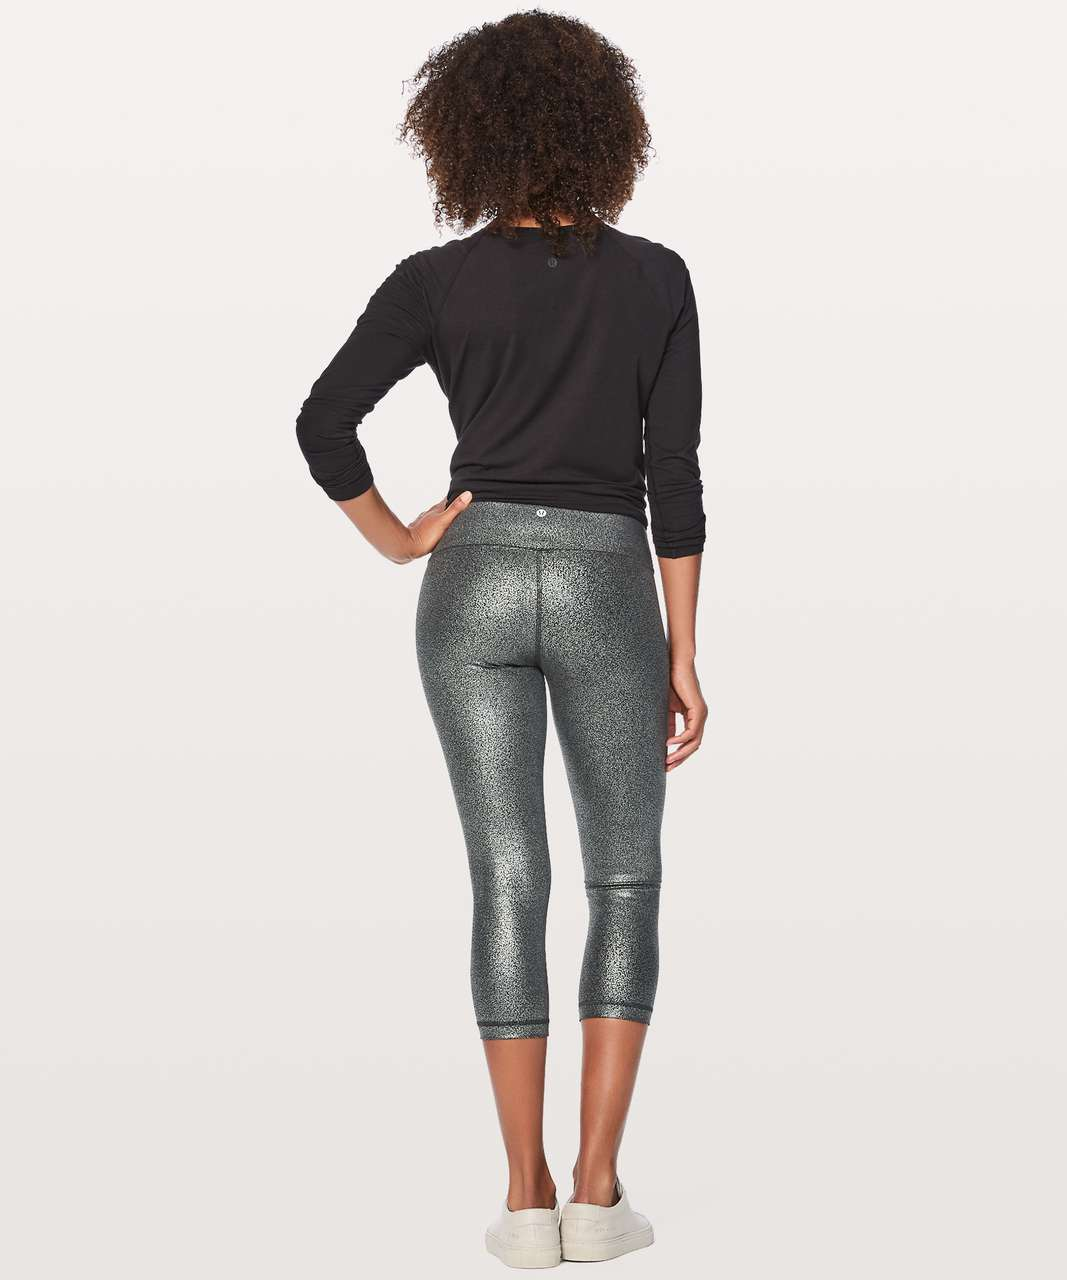 "Lululemon Wunder Under Crop (Hi-Rise) *Full-On Luxtreme 21"" - Luminosity Foil Print Black Silver"